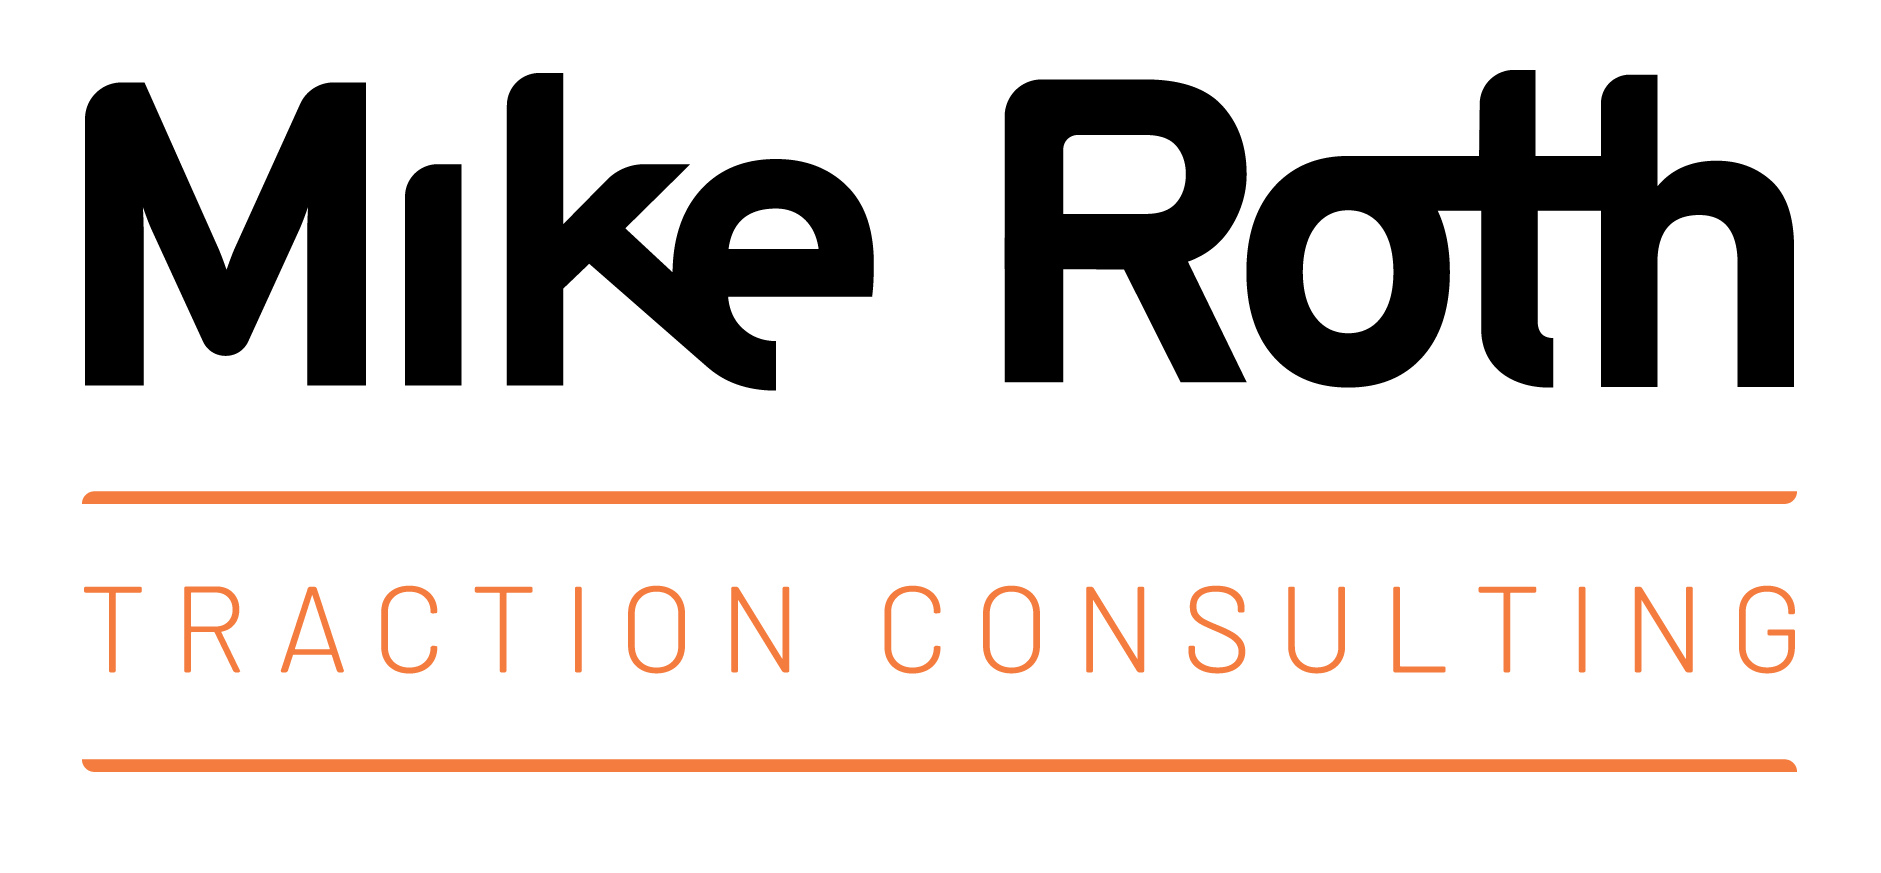 Mike Roth Traction Consulting